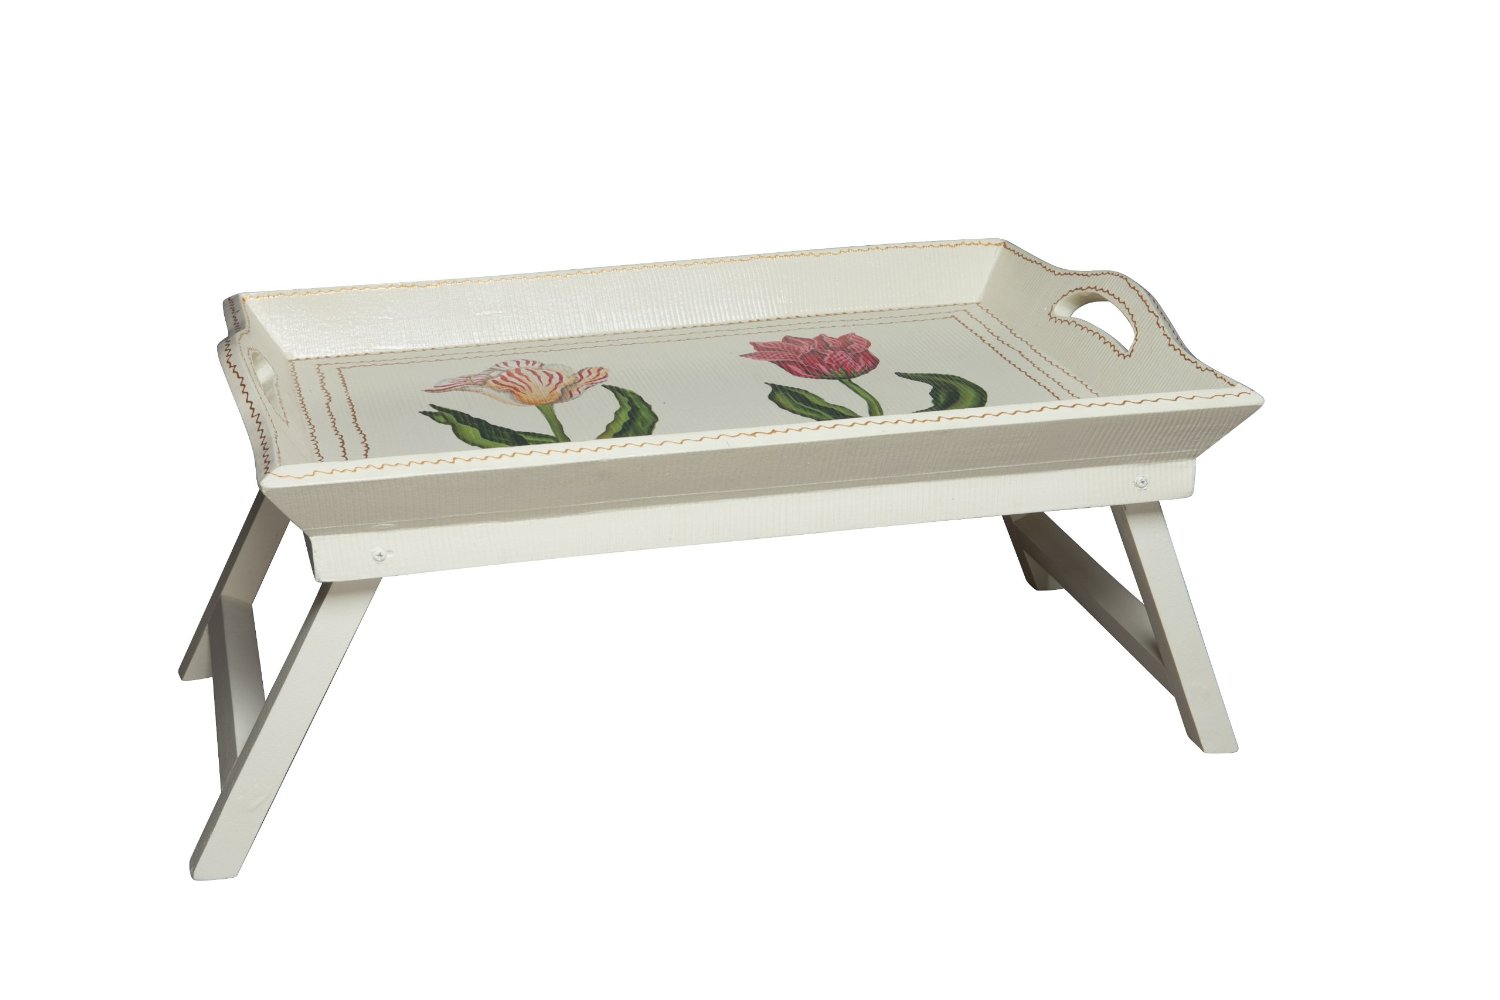 Bed Tray Bedroom Accessories